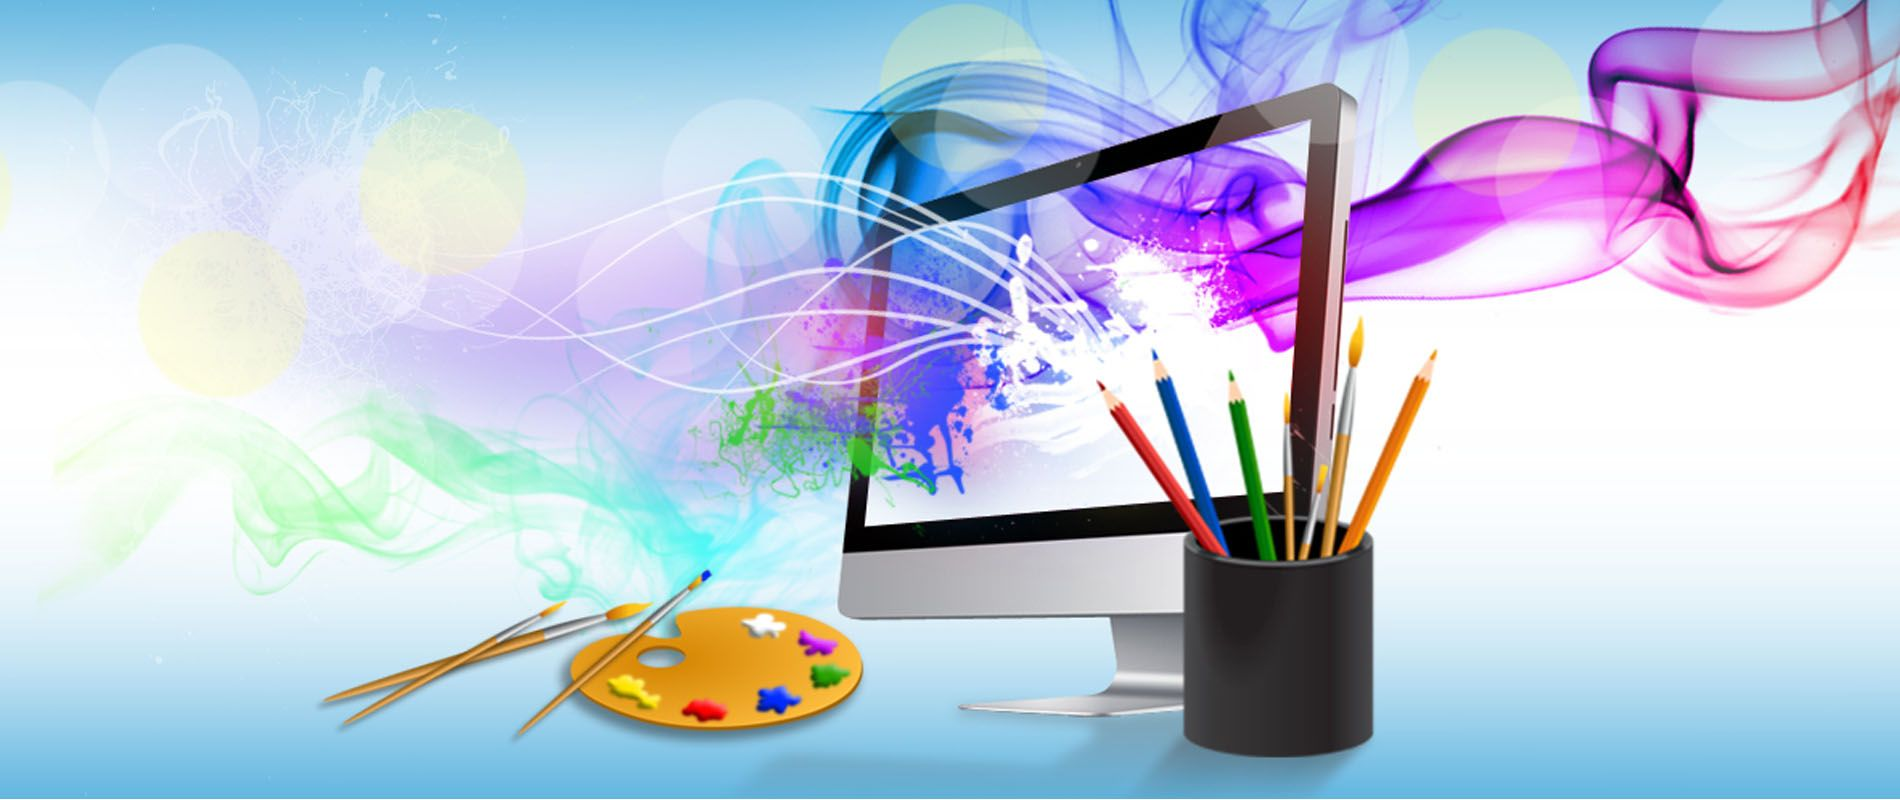 Web Design Company In London Quality Services At Fair Prices Website Design Services Custom Website Design Business Website Design